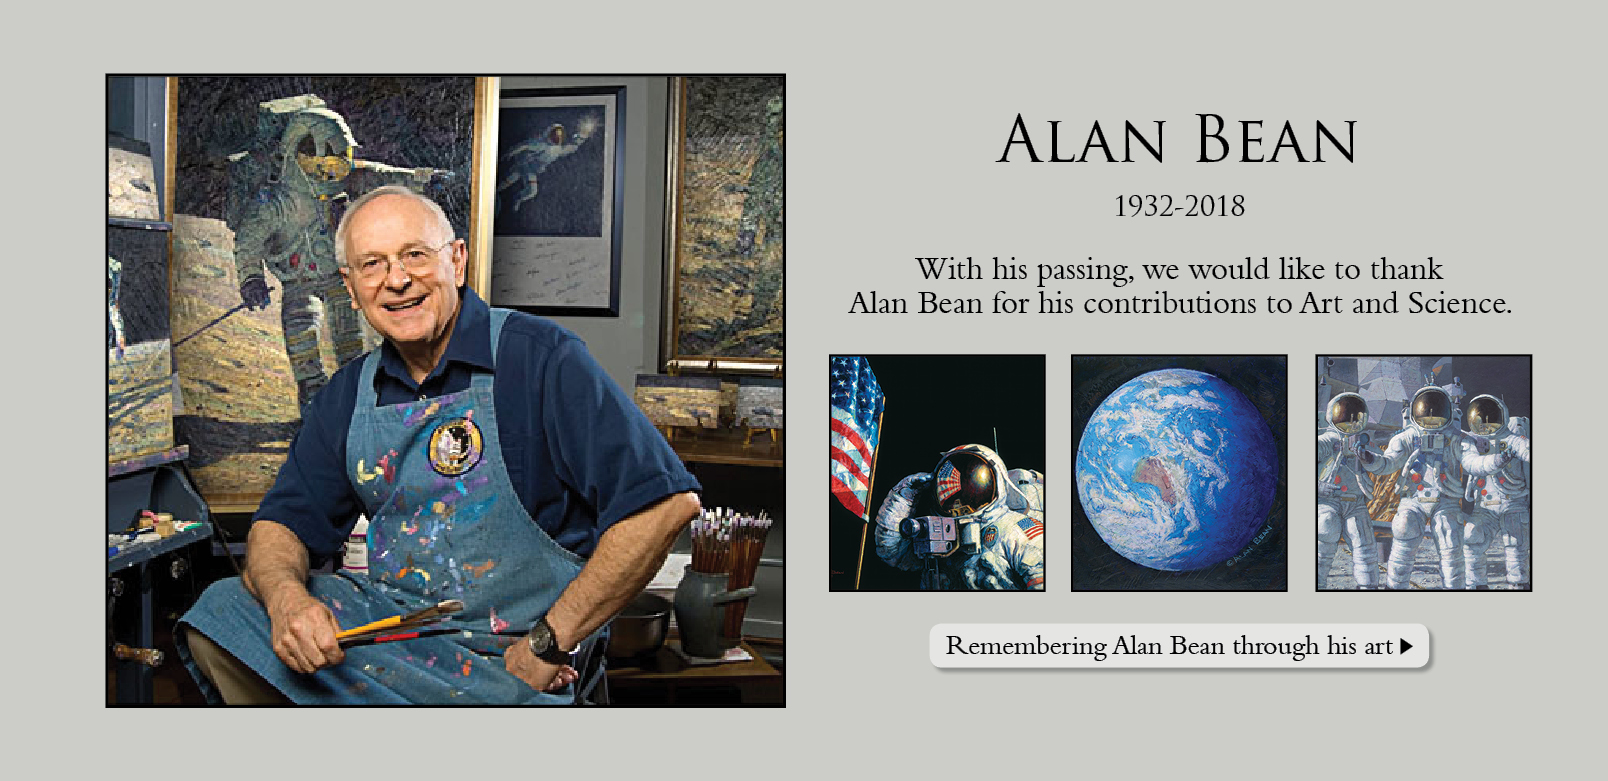 Allan Bean passed away May 26, 2018